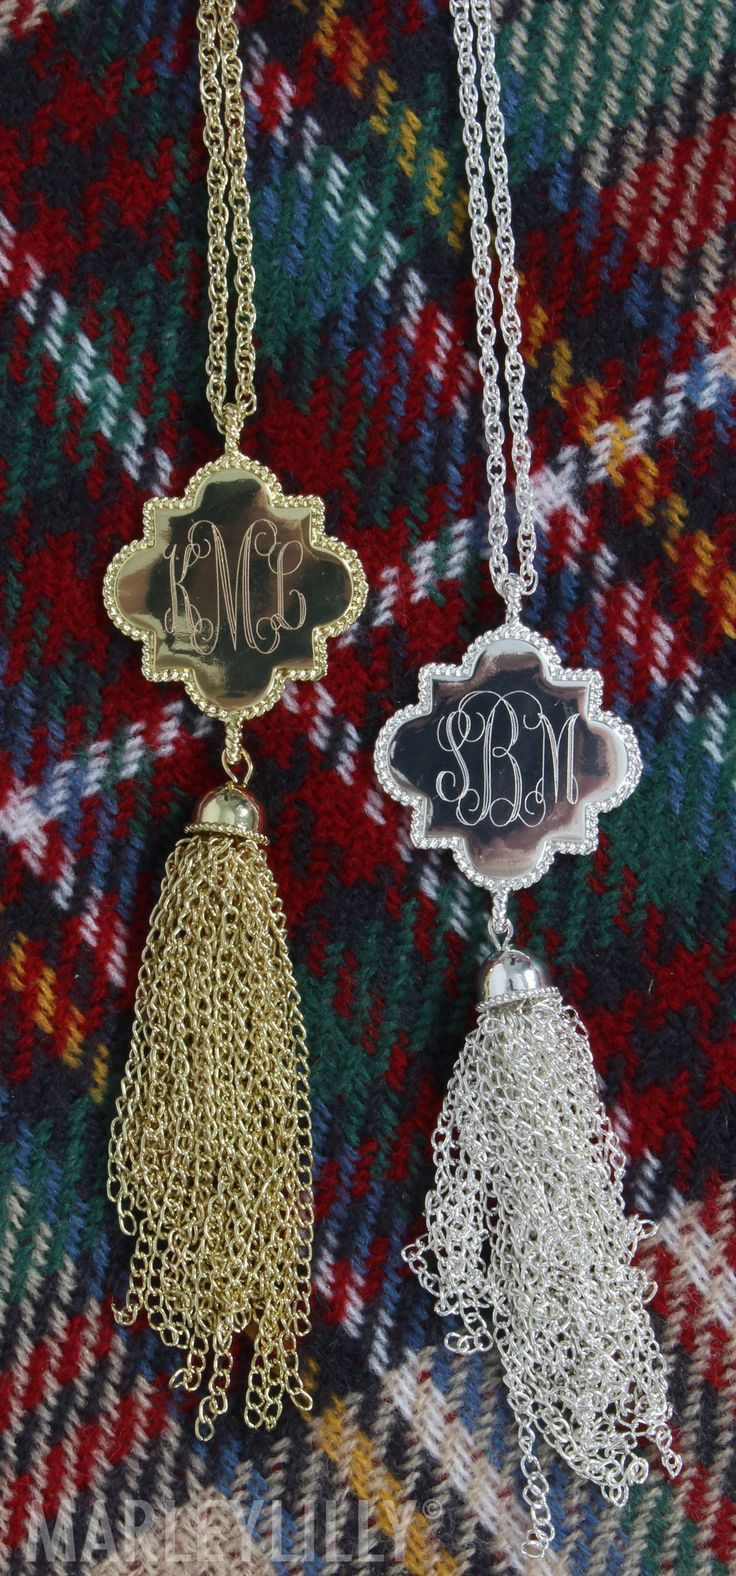 Quatrefoil Gold & Silver Monogrammed Necklaces! MUST HAVEEEEE!